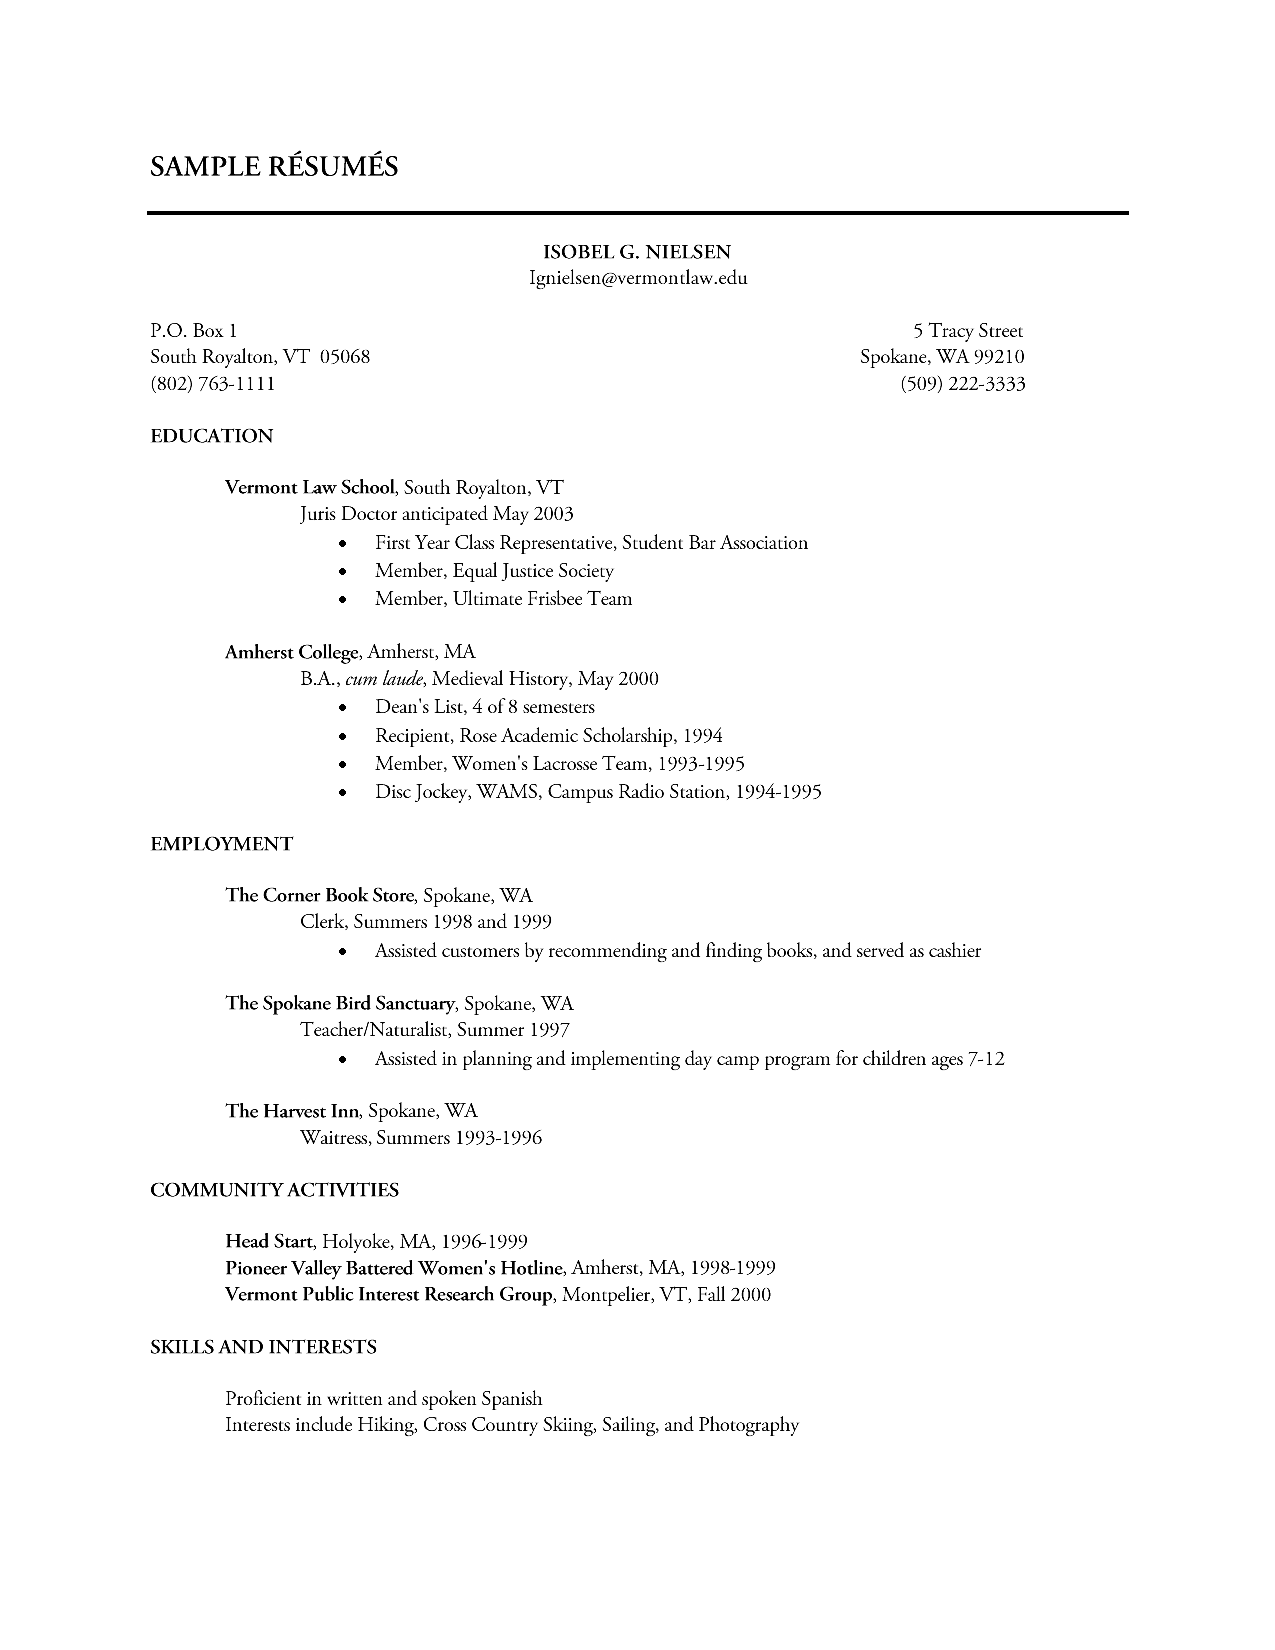 Sample Resume Showing Volunteer Work | Resume Sample Volunteer Ngo  Volunteer Work In Resume